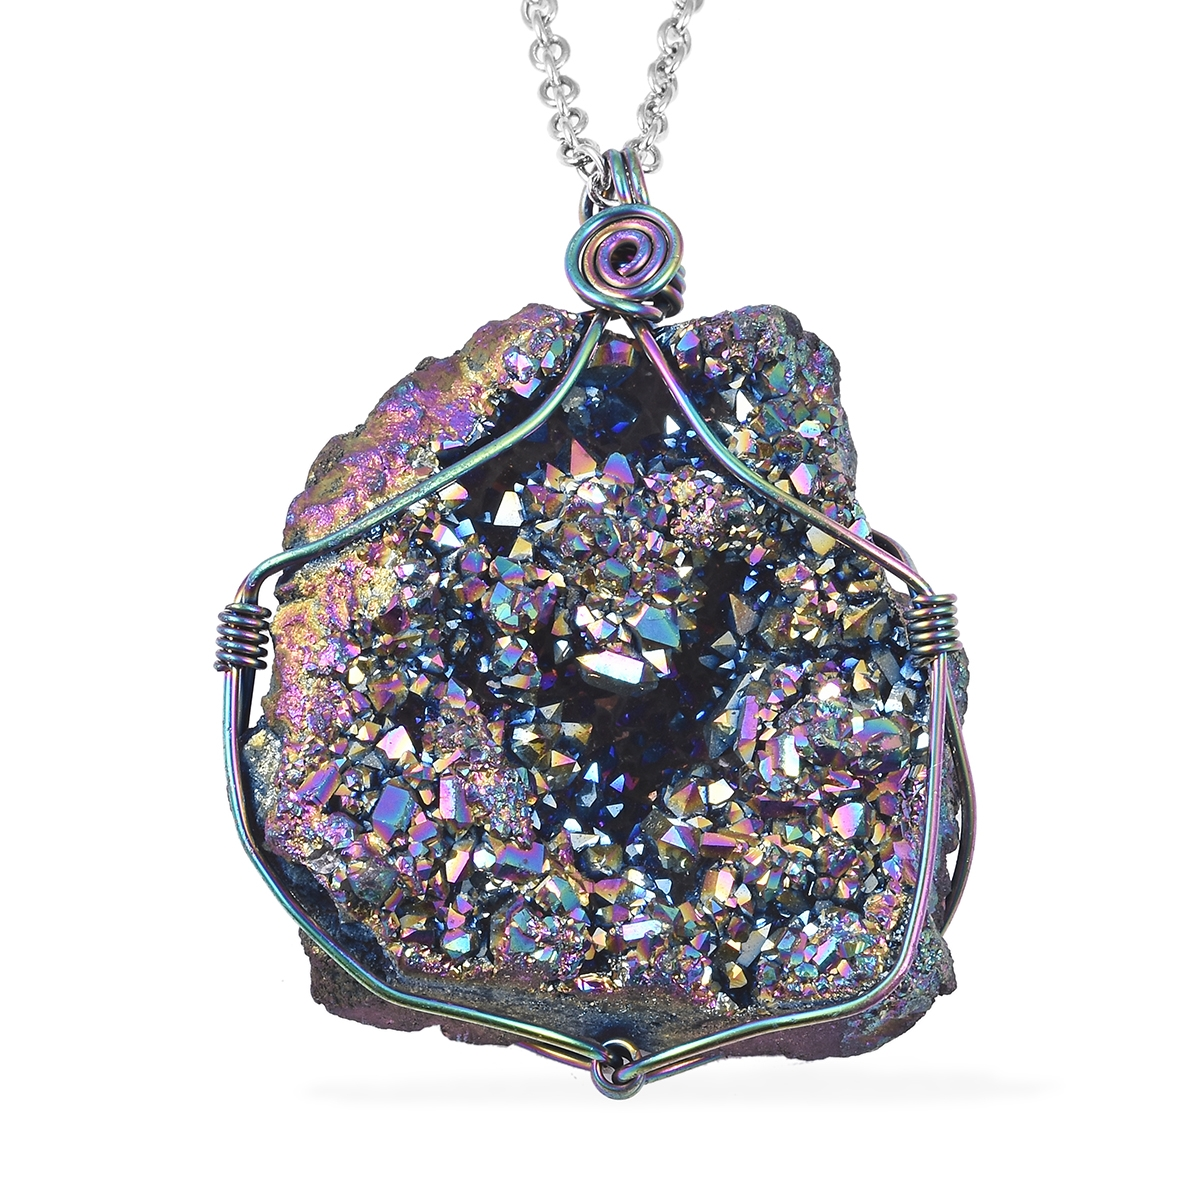 ION Plated Green Drusy Quartz Amethyst Pendant Necklace Jewelry for Women 24/""